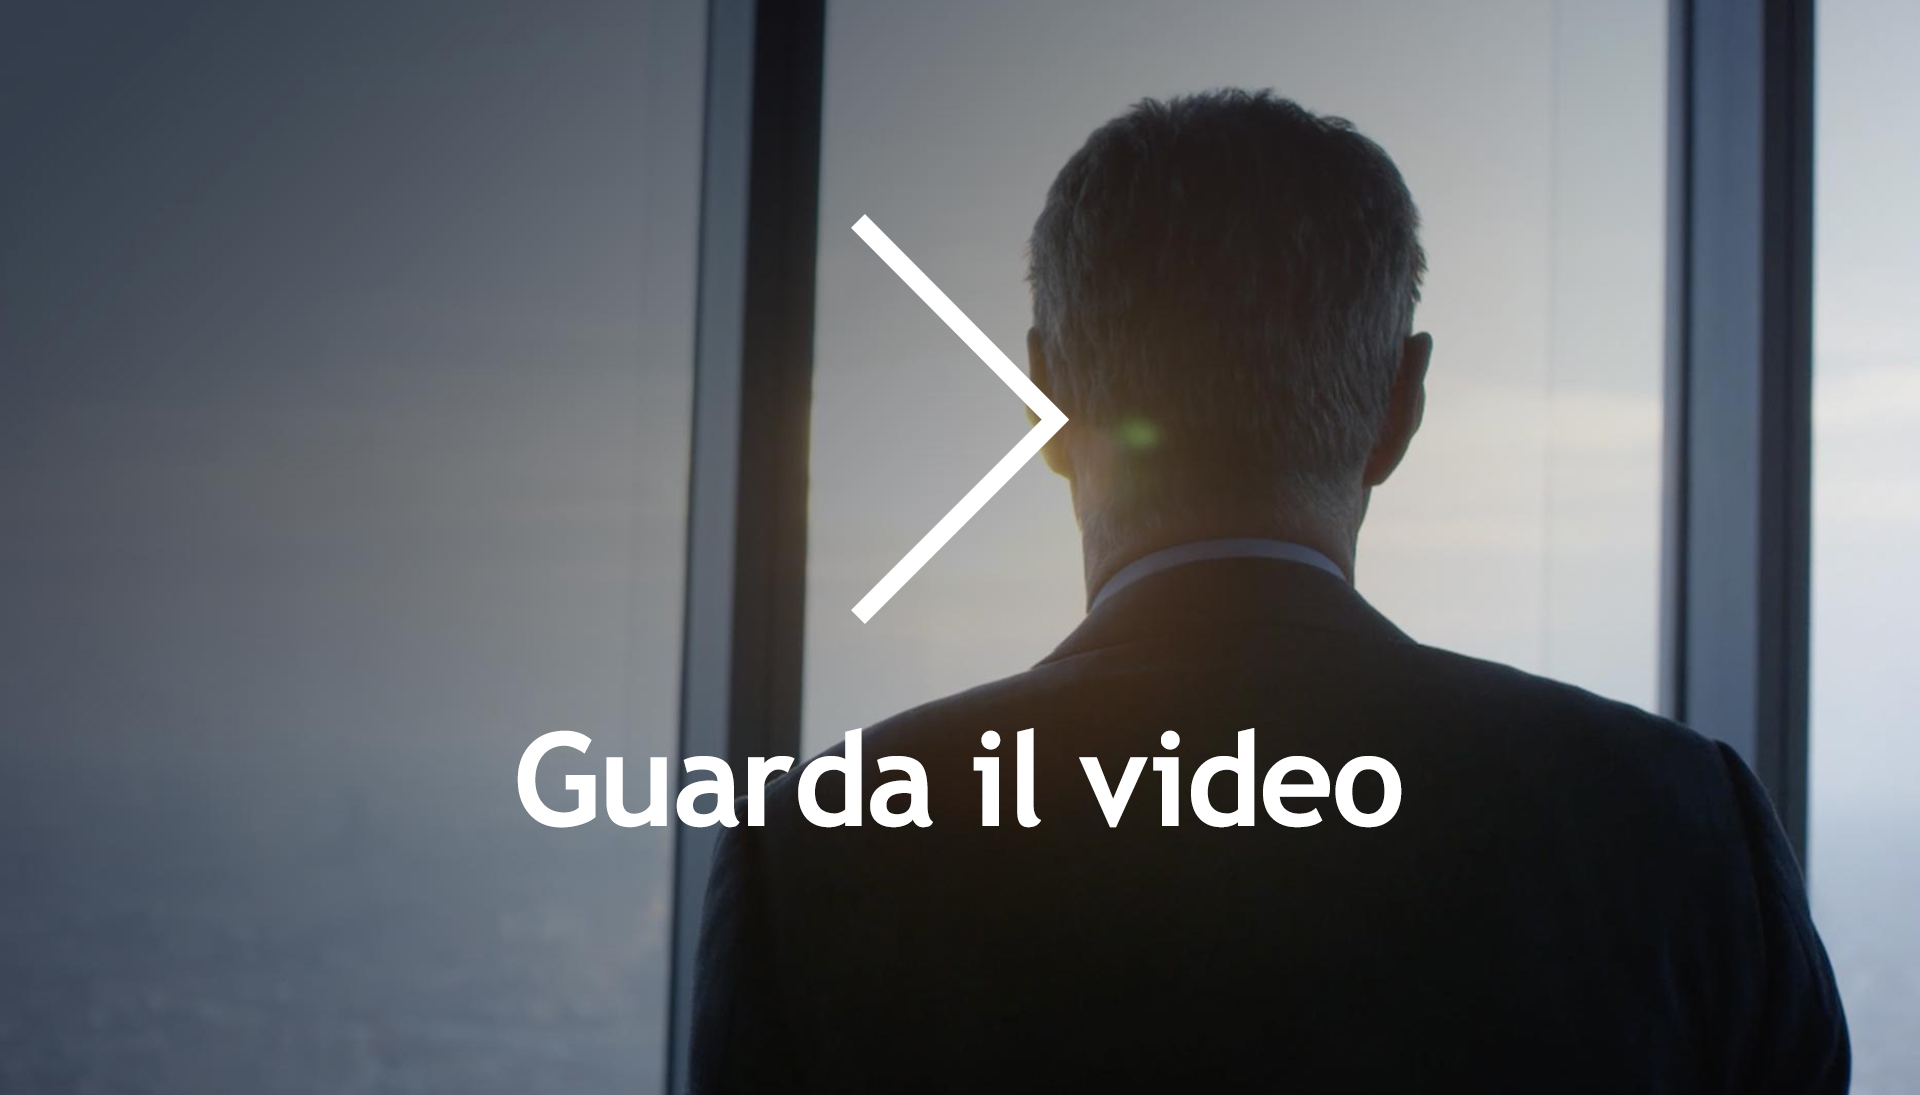 About Agency - BNP paribas video- The Prosumer Agency